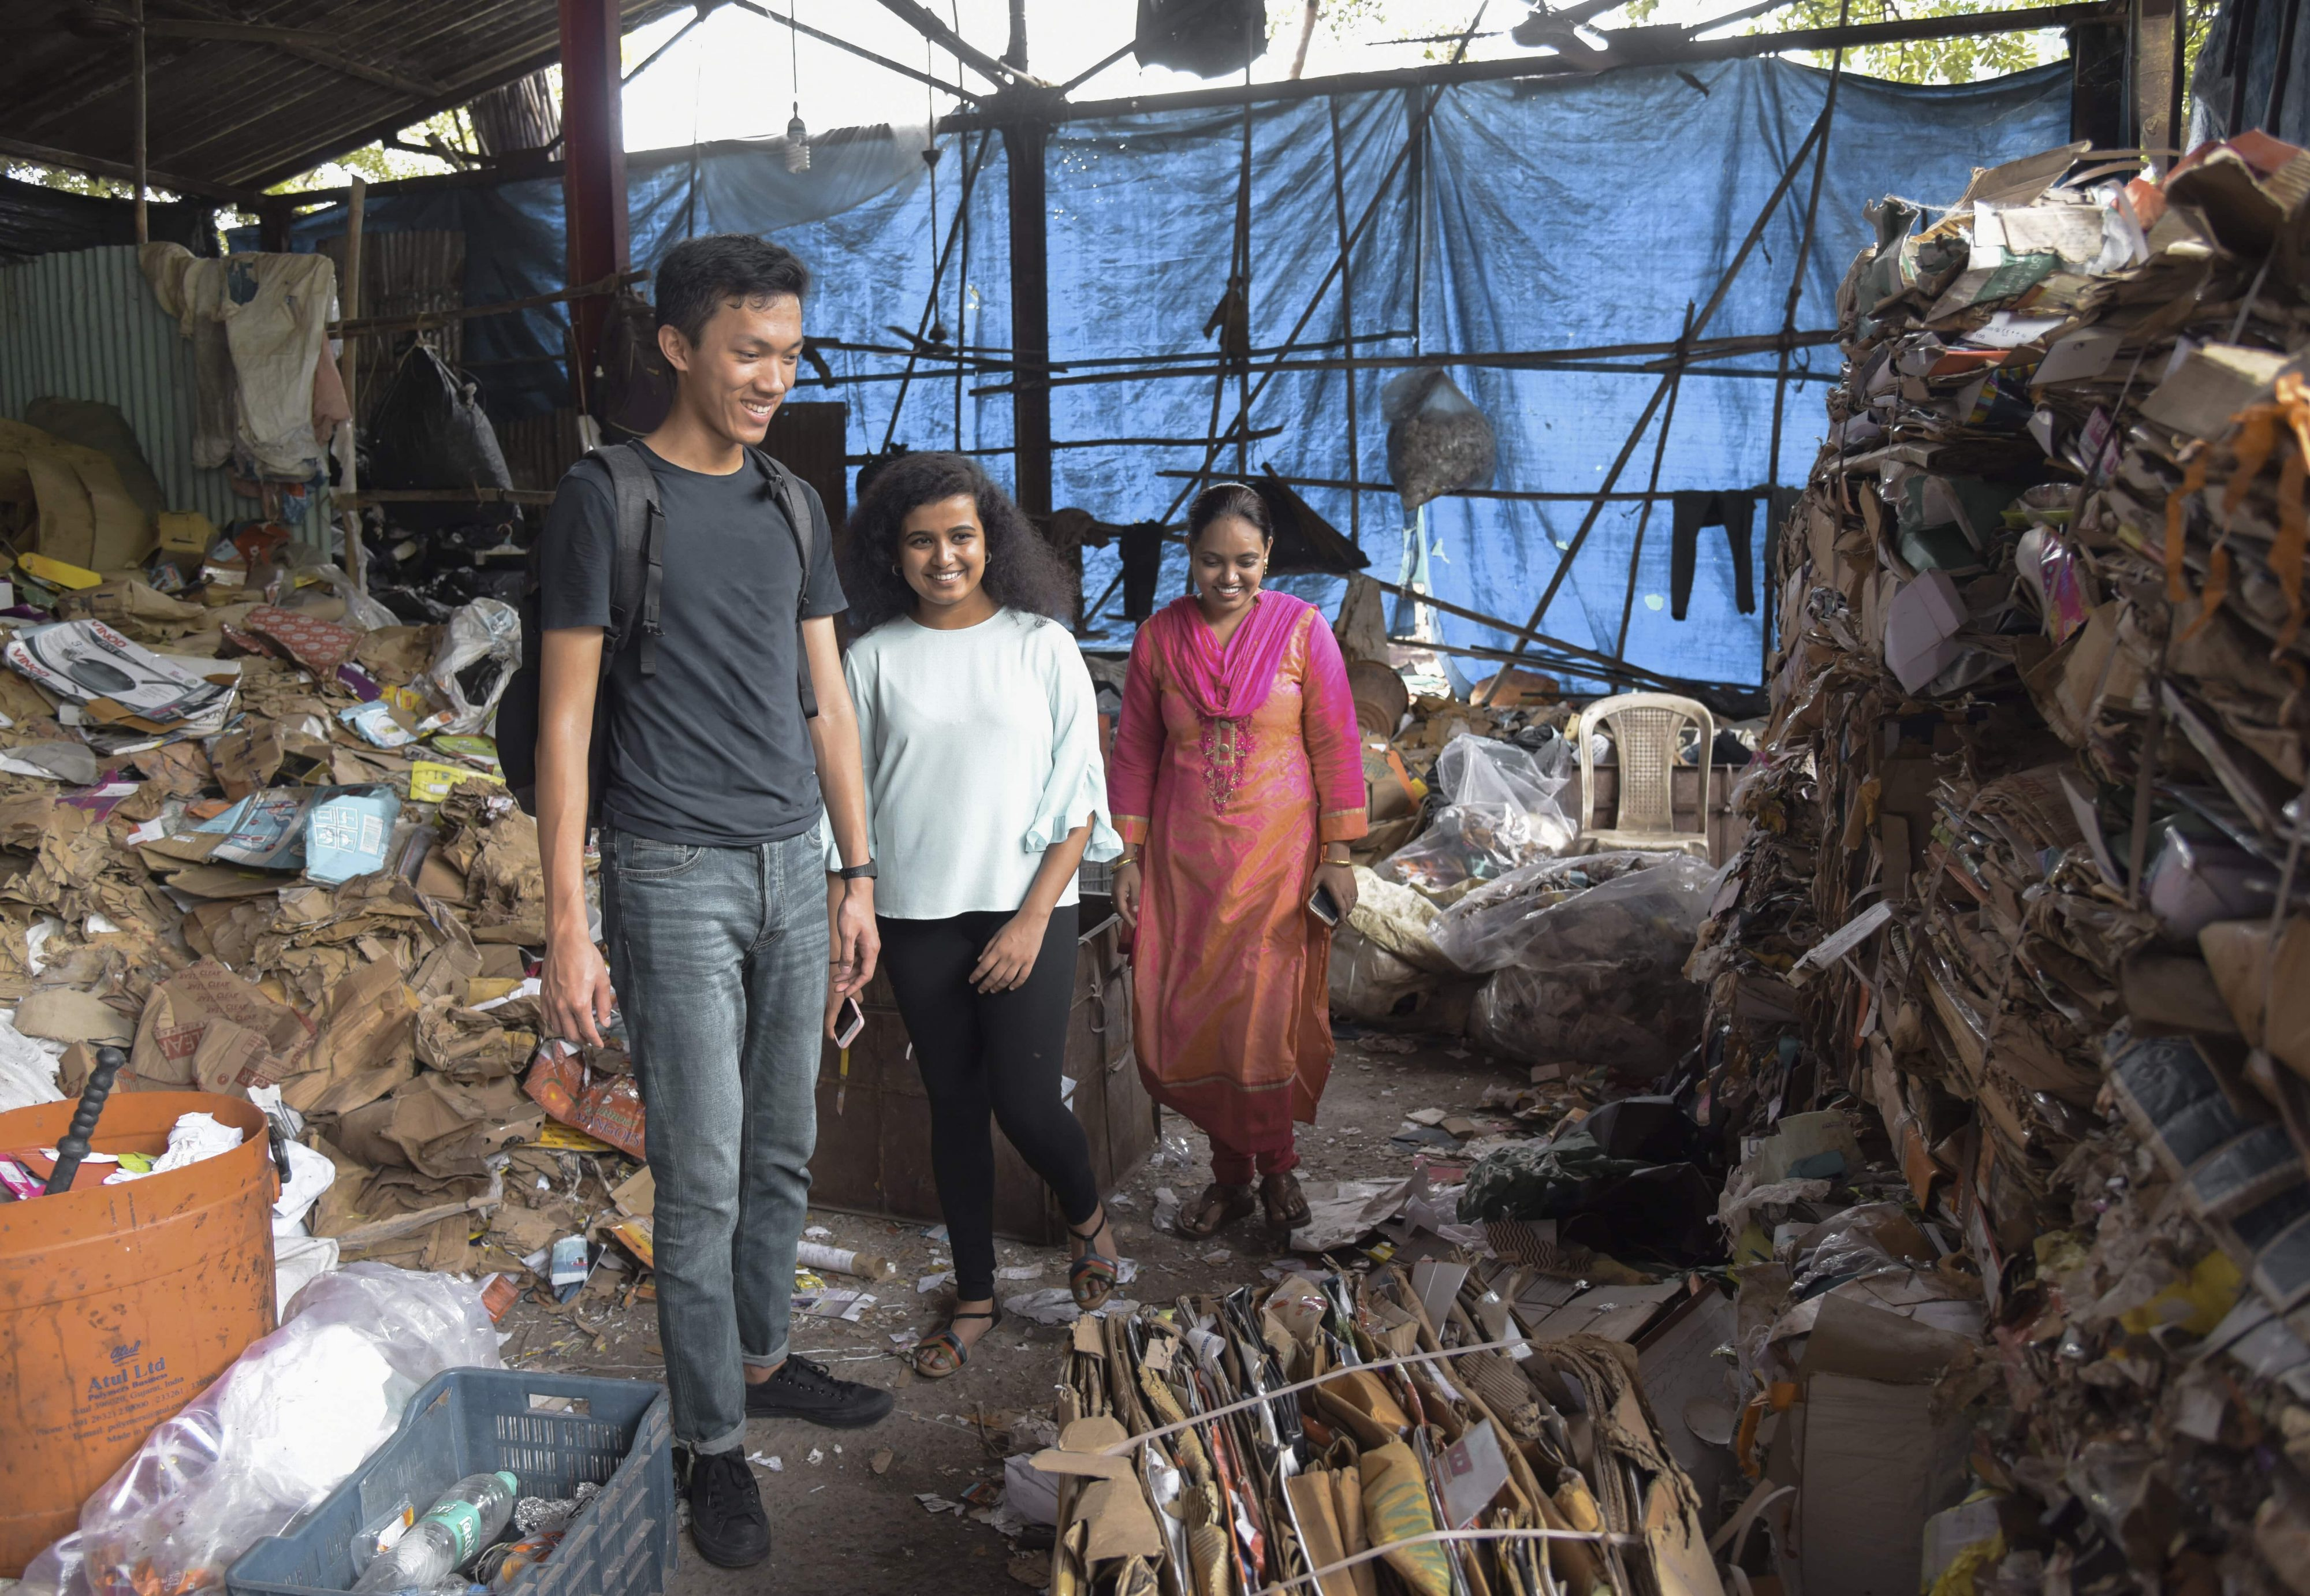 Our co-founders Peter Wang Hjemdahl and Savinka Balasubramanian in a waste recycling enterprise in India